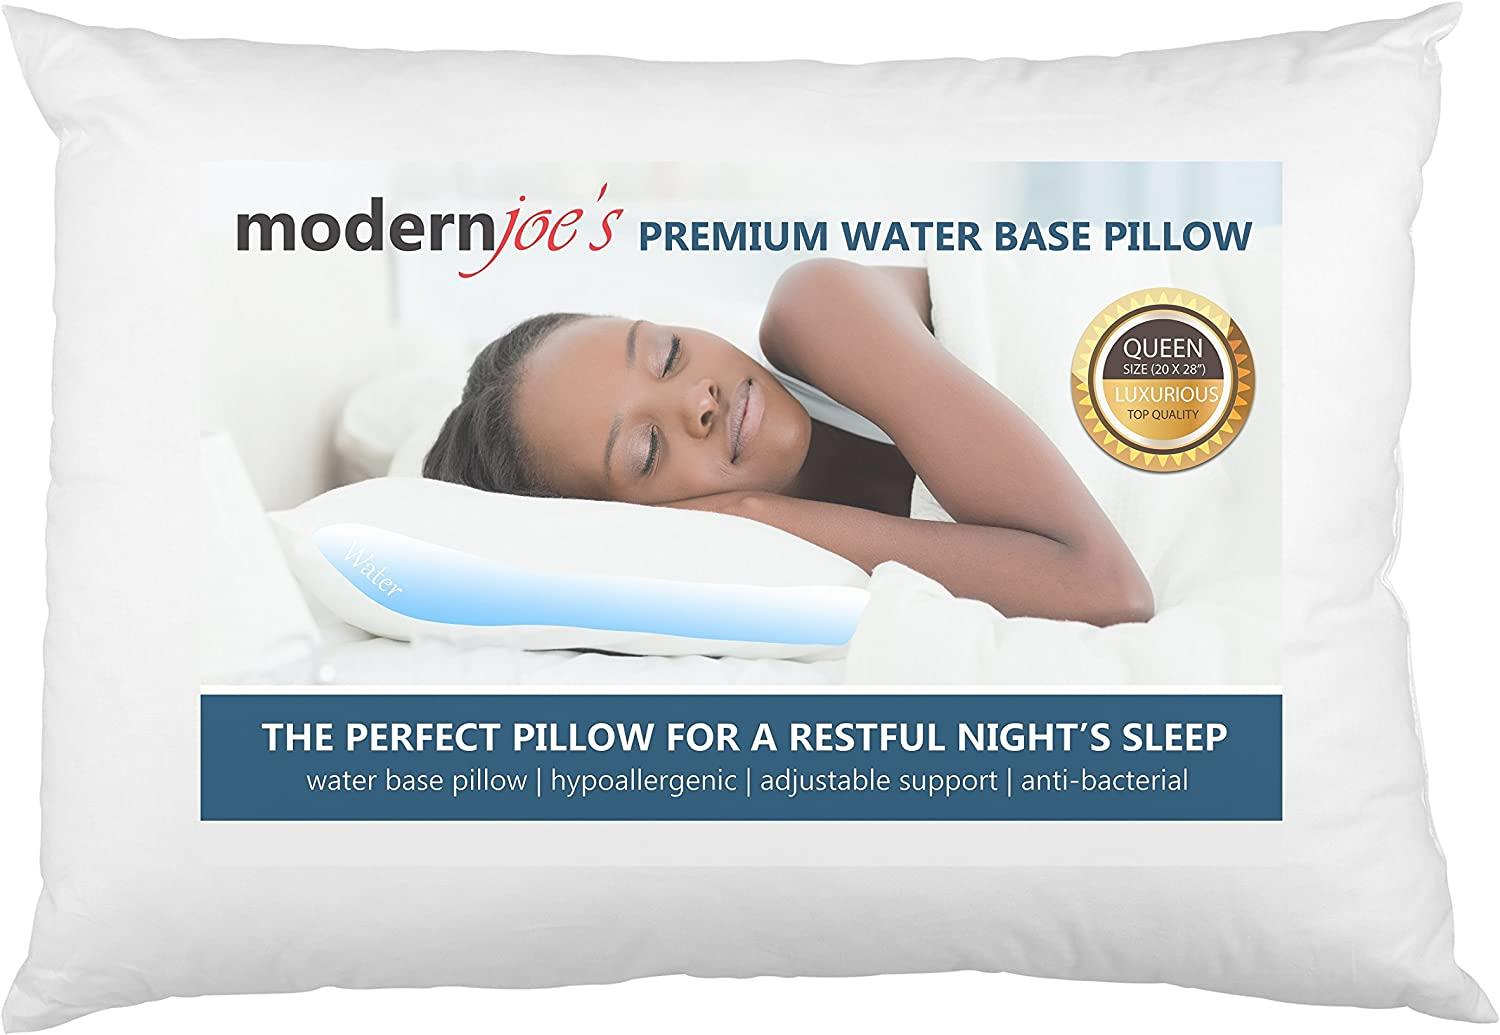 MODERNJOE'S Luxurious Queen Size Water Pillow (20x28), Adjustable Waterbase Pillow